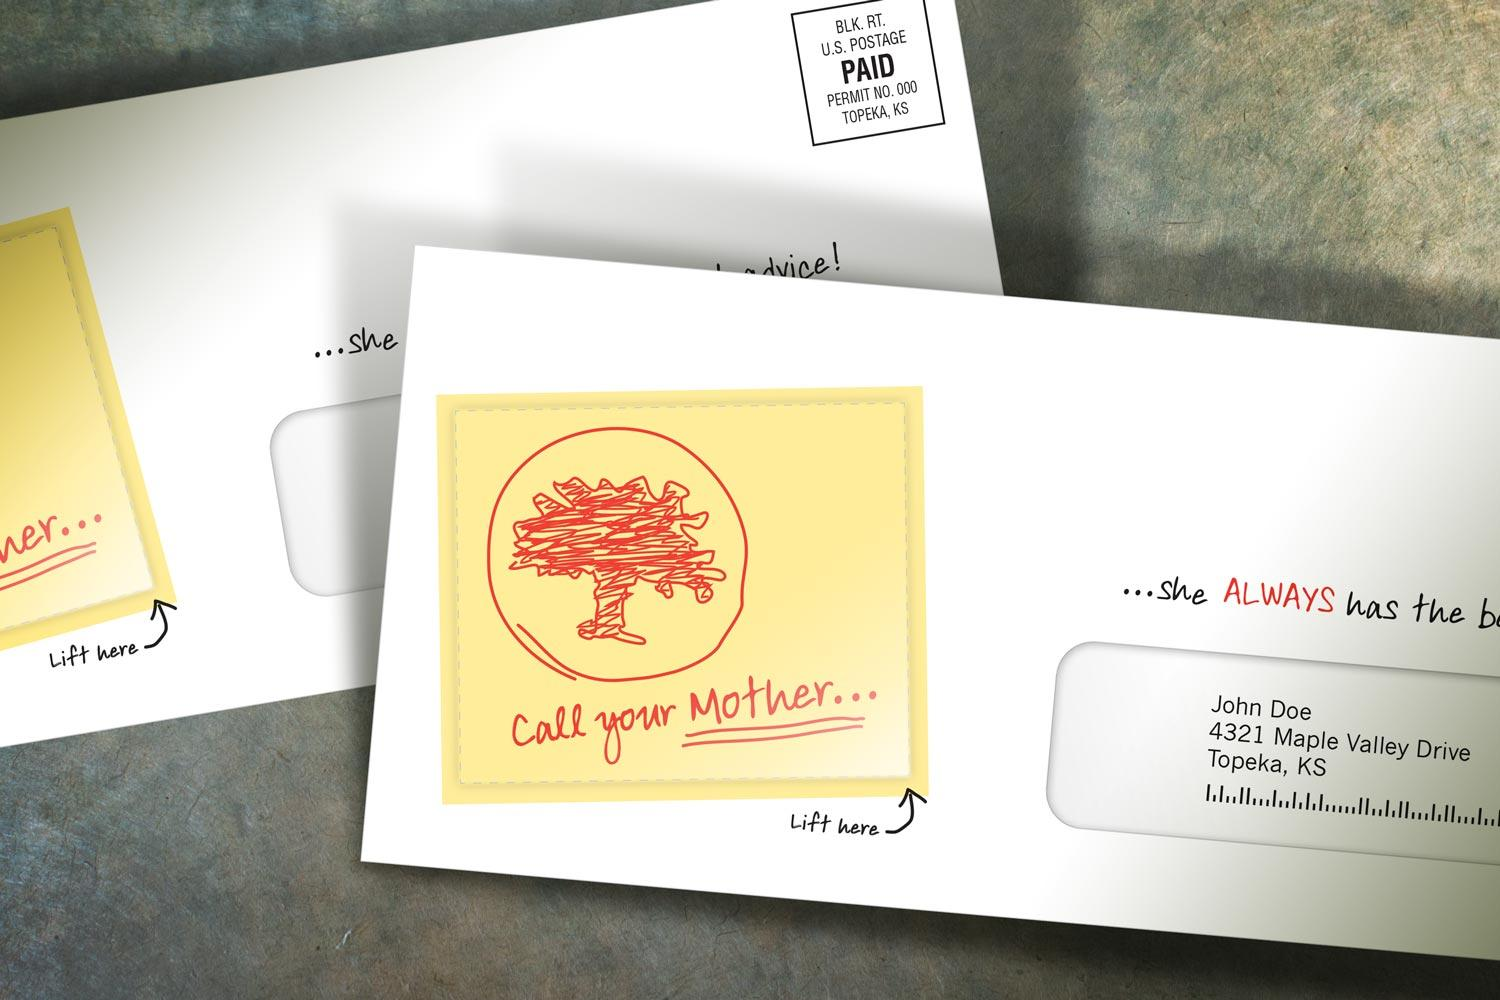 Hot Note Sticky Notes for Direct Mail Marketing